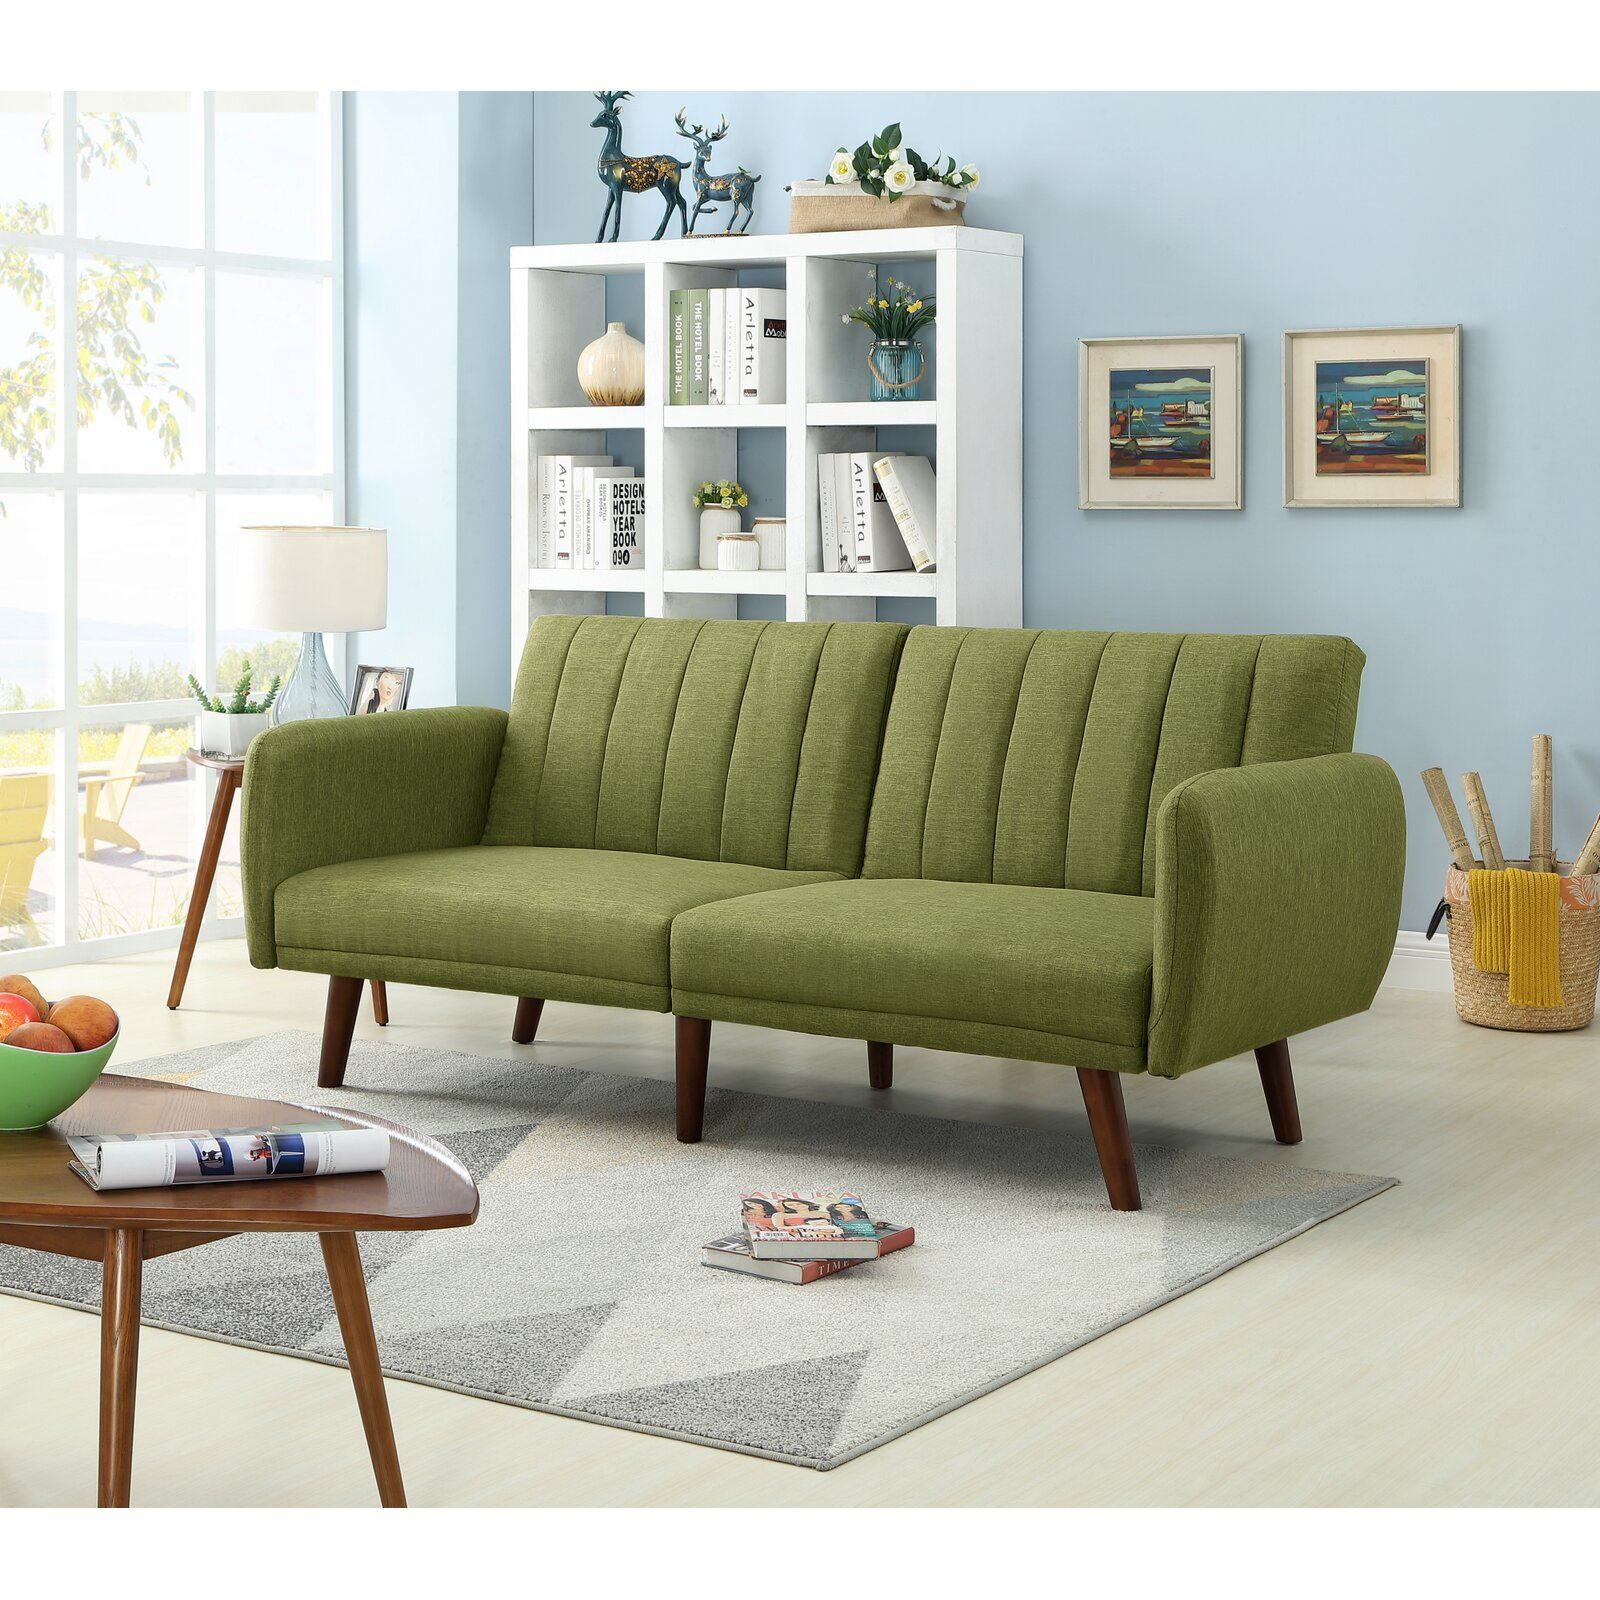 Admirable Fynn Sofa Bed Home Decor Family Living Rooms Sofa Sofa Caraccident5 Cool Chair Designs And Ideas Caraccident5Info